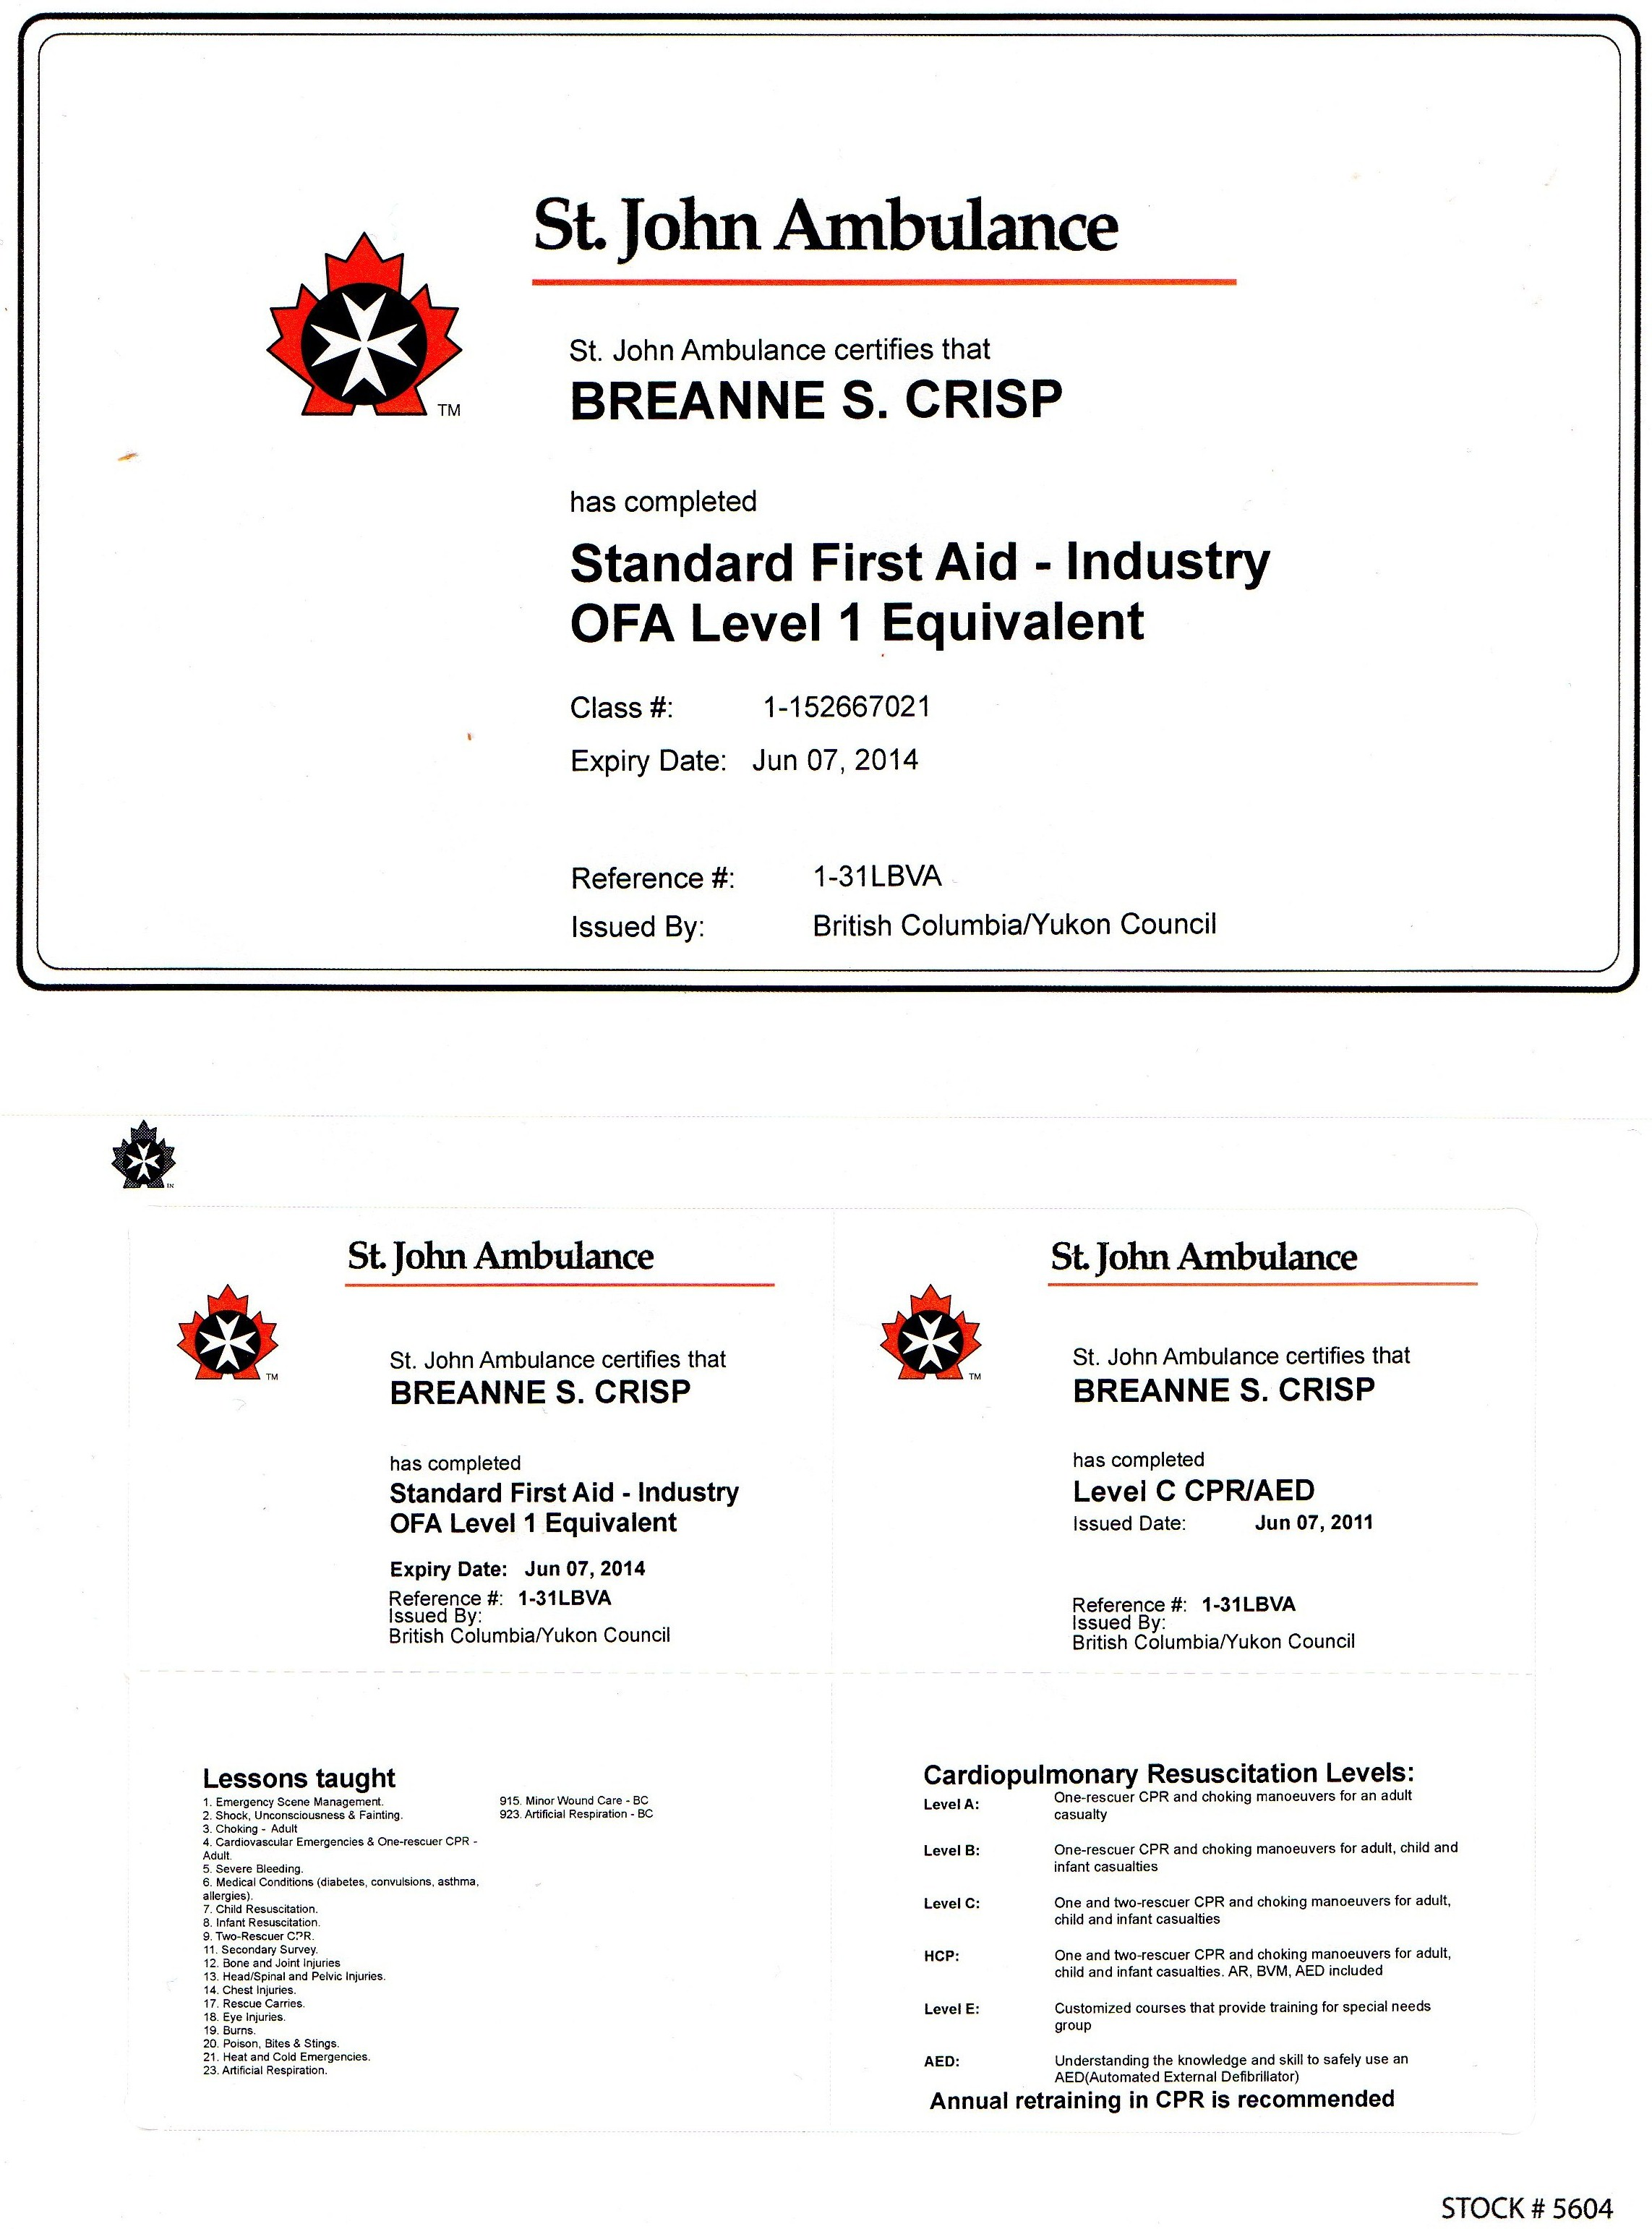 Rsum breanne crisp first aid industry ofa level 1 equivalent and level c cpraed 2011 xflitez Gallery